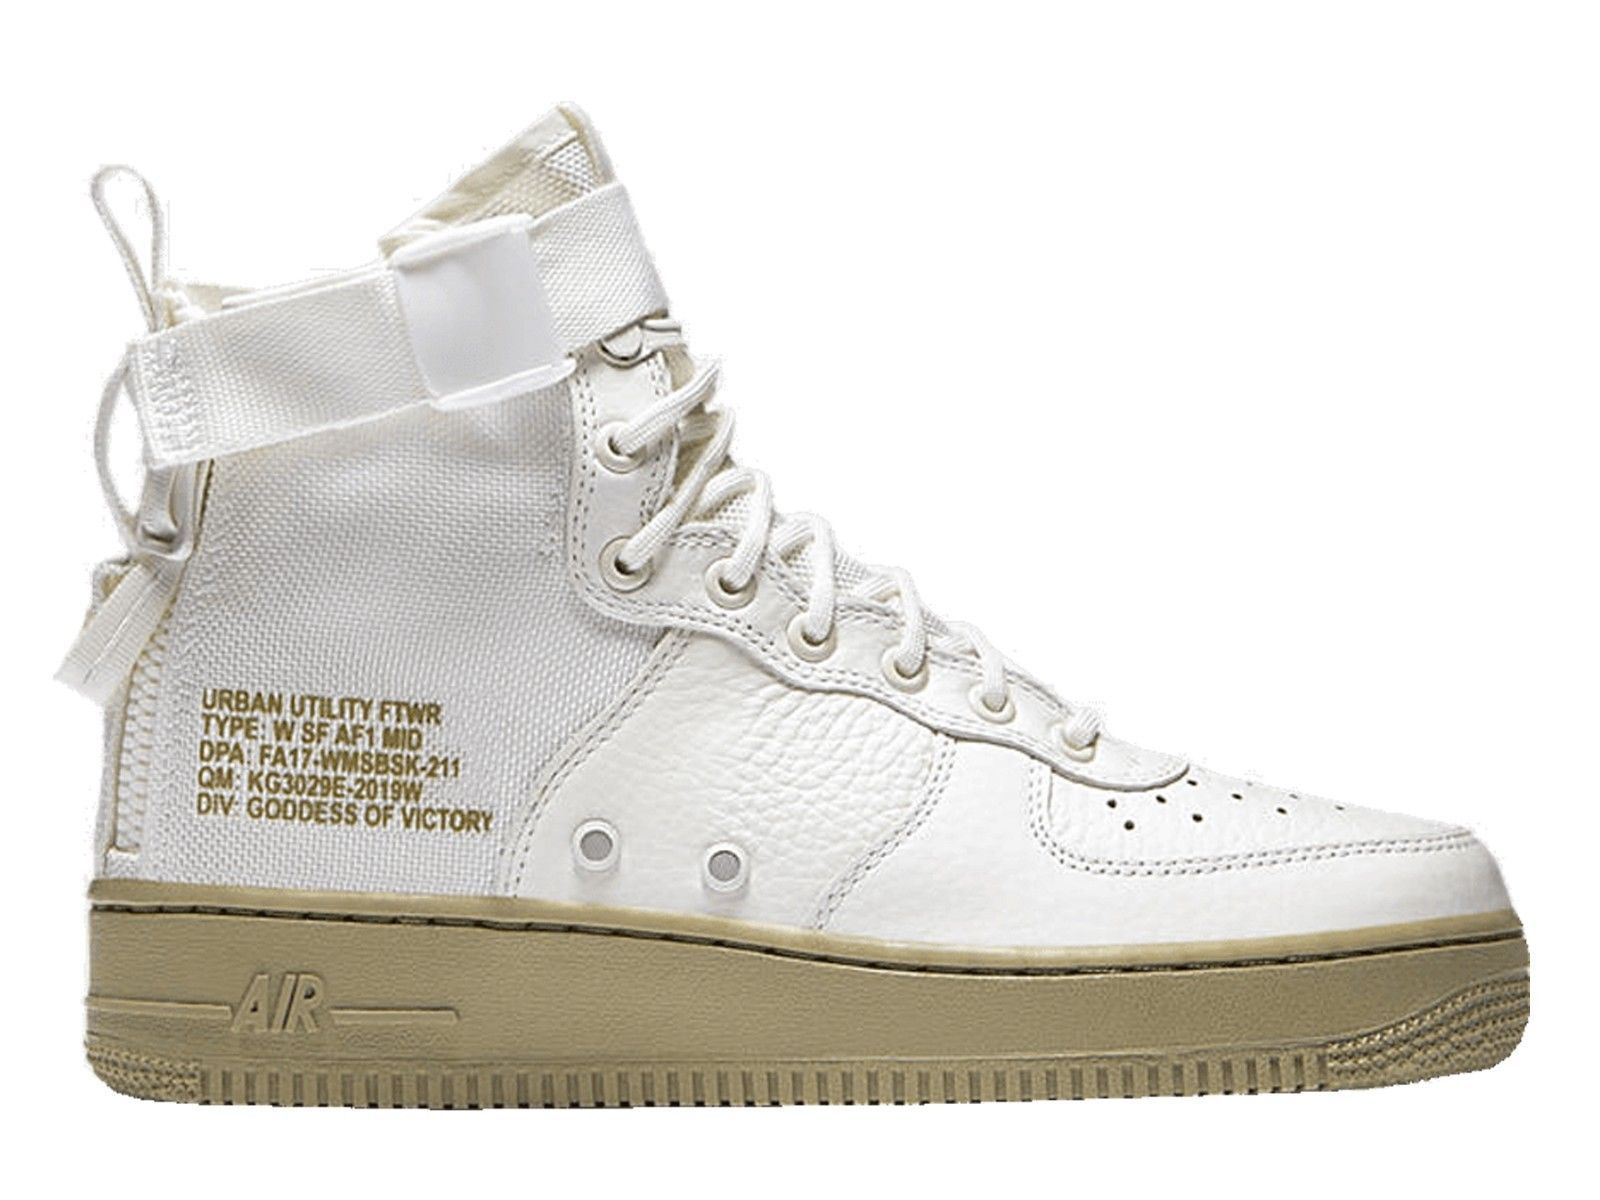 95.99 ❤ Nike Women's SF AIR FORCE 1 MID IVORY Shoes AA3966